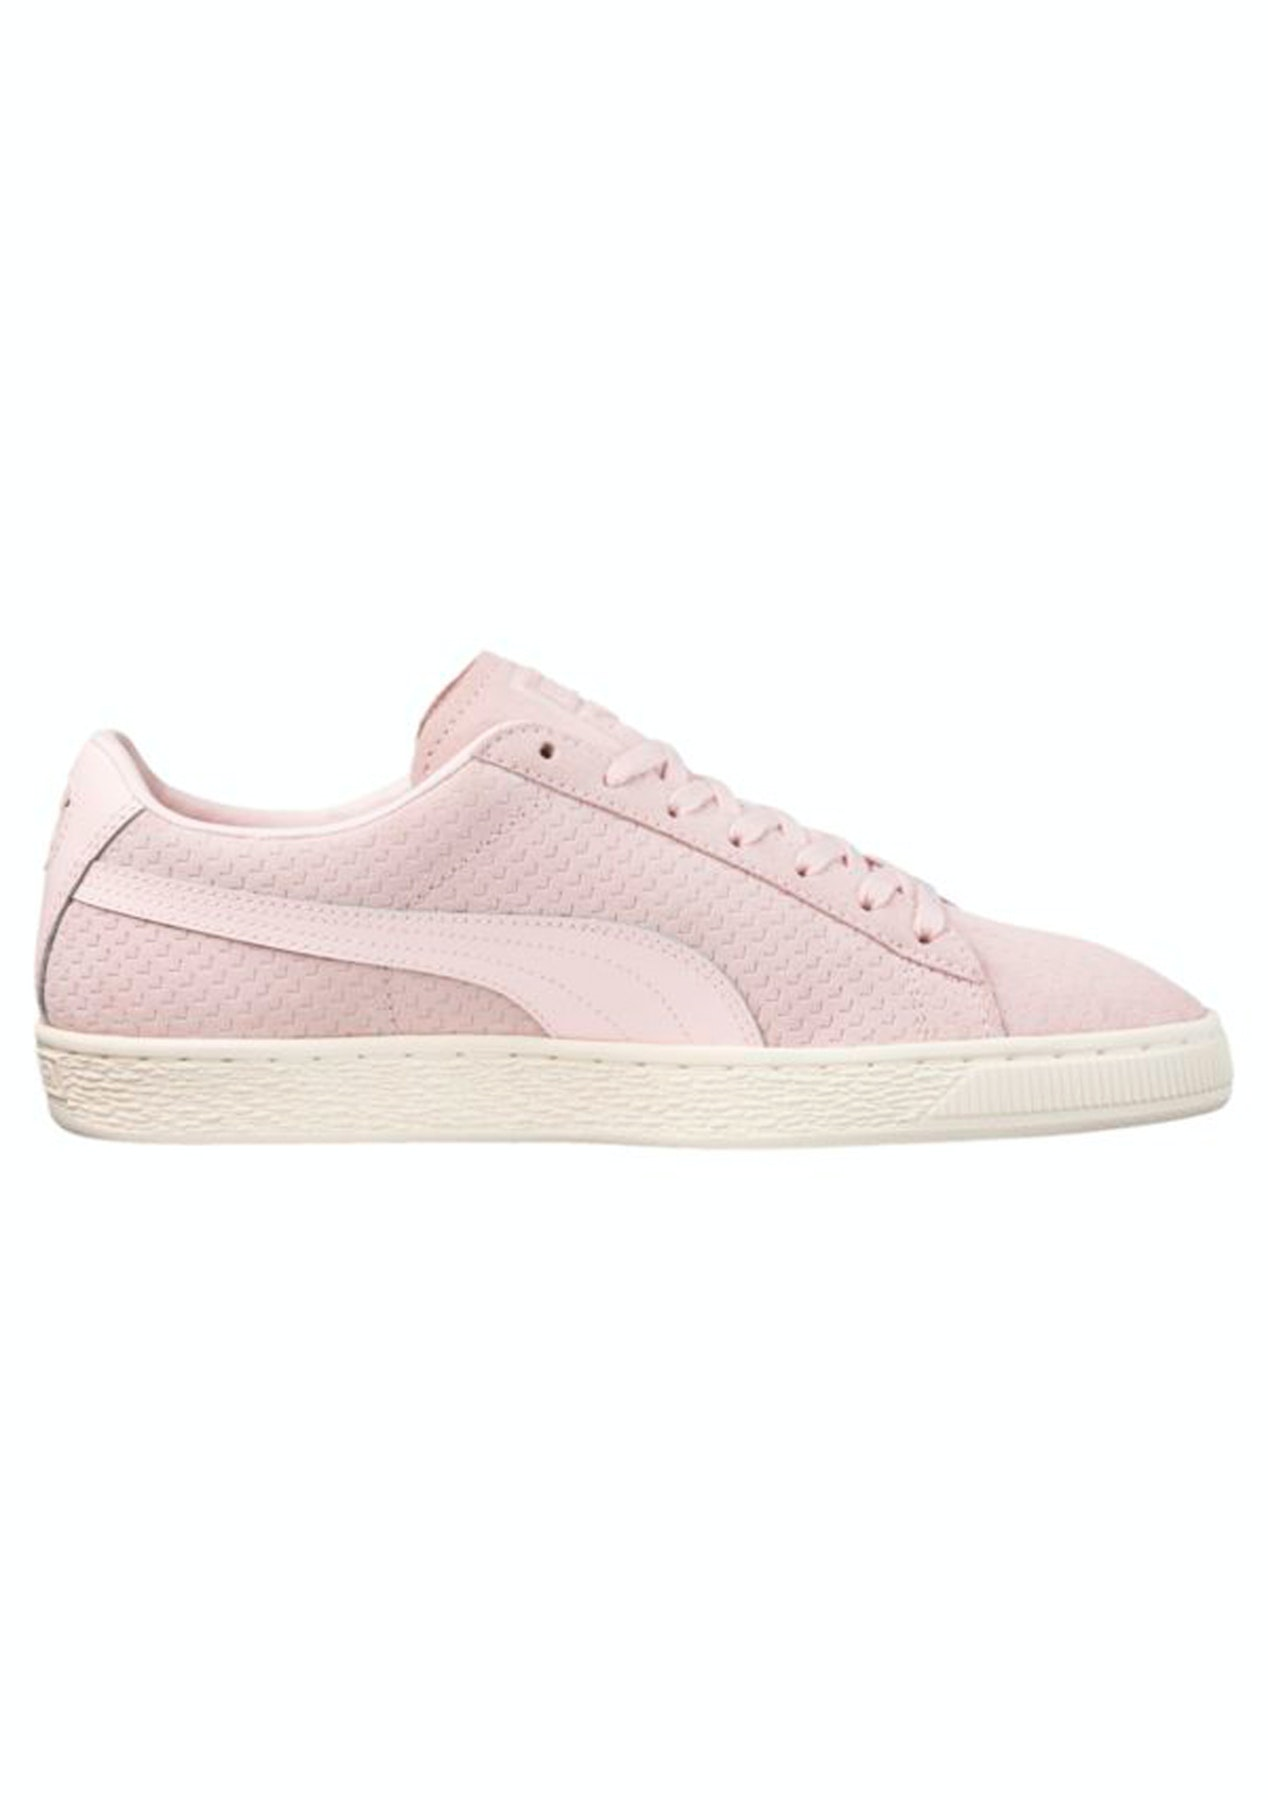 the latest 7ad6d cd87f Puma Womens - Suede Classic Perforation Pearl - Puma Womens   Kids Up to  60% Off - Onceit